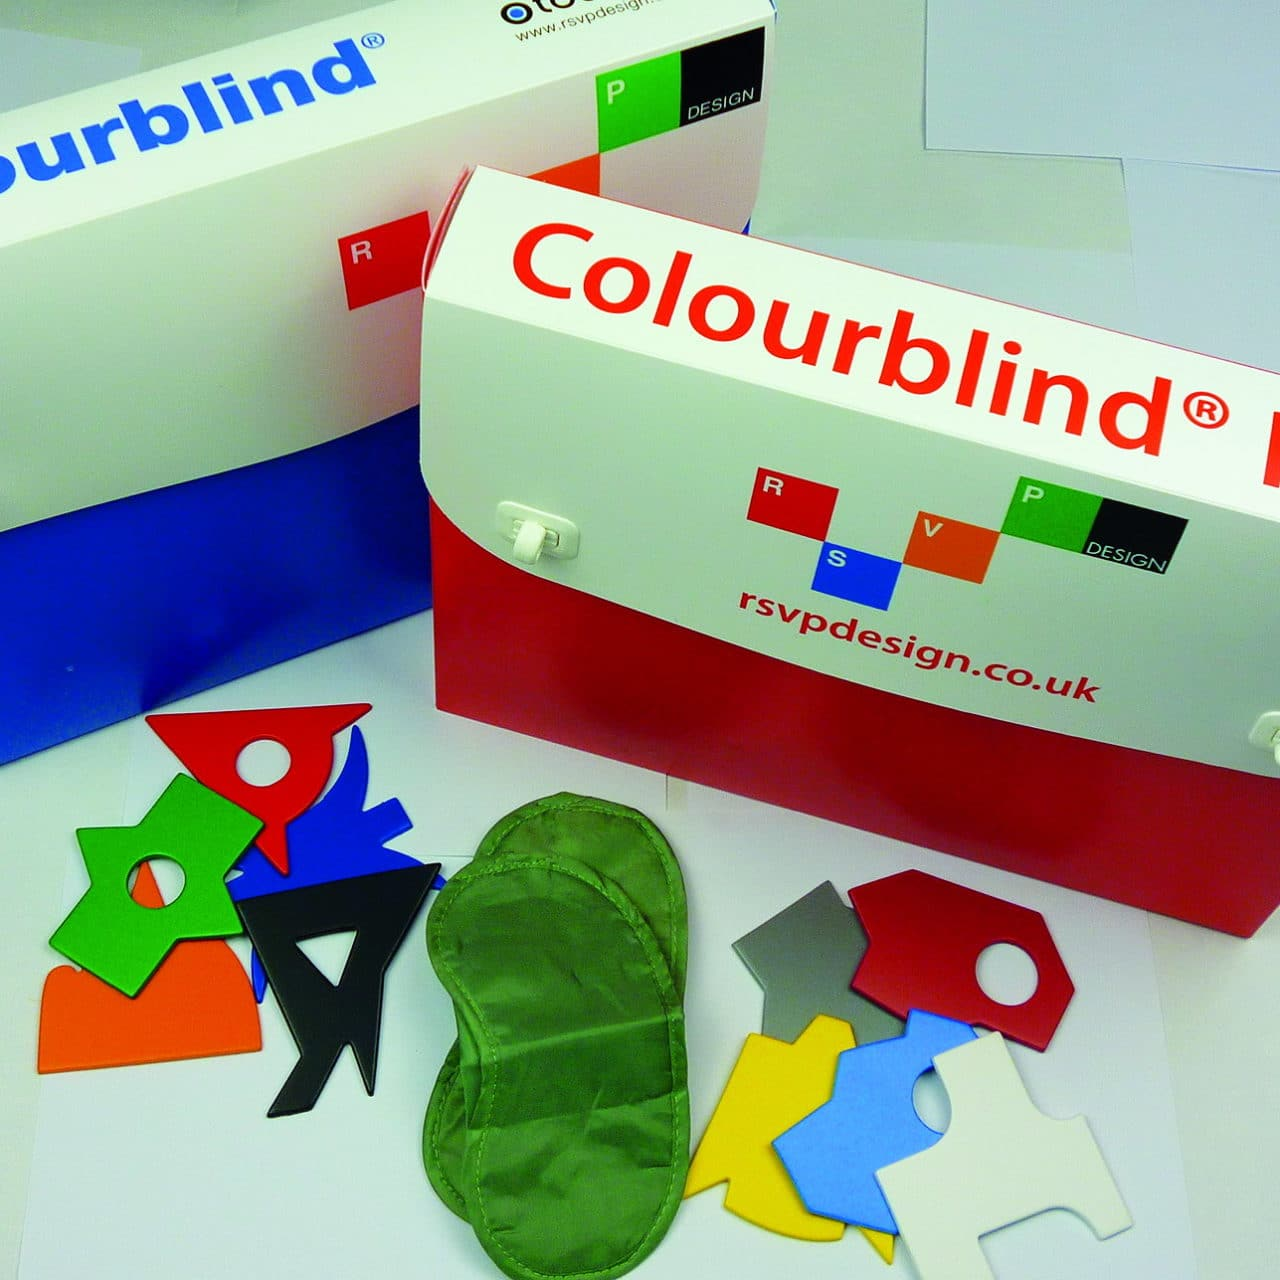 Colourblind Plus